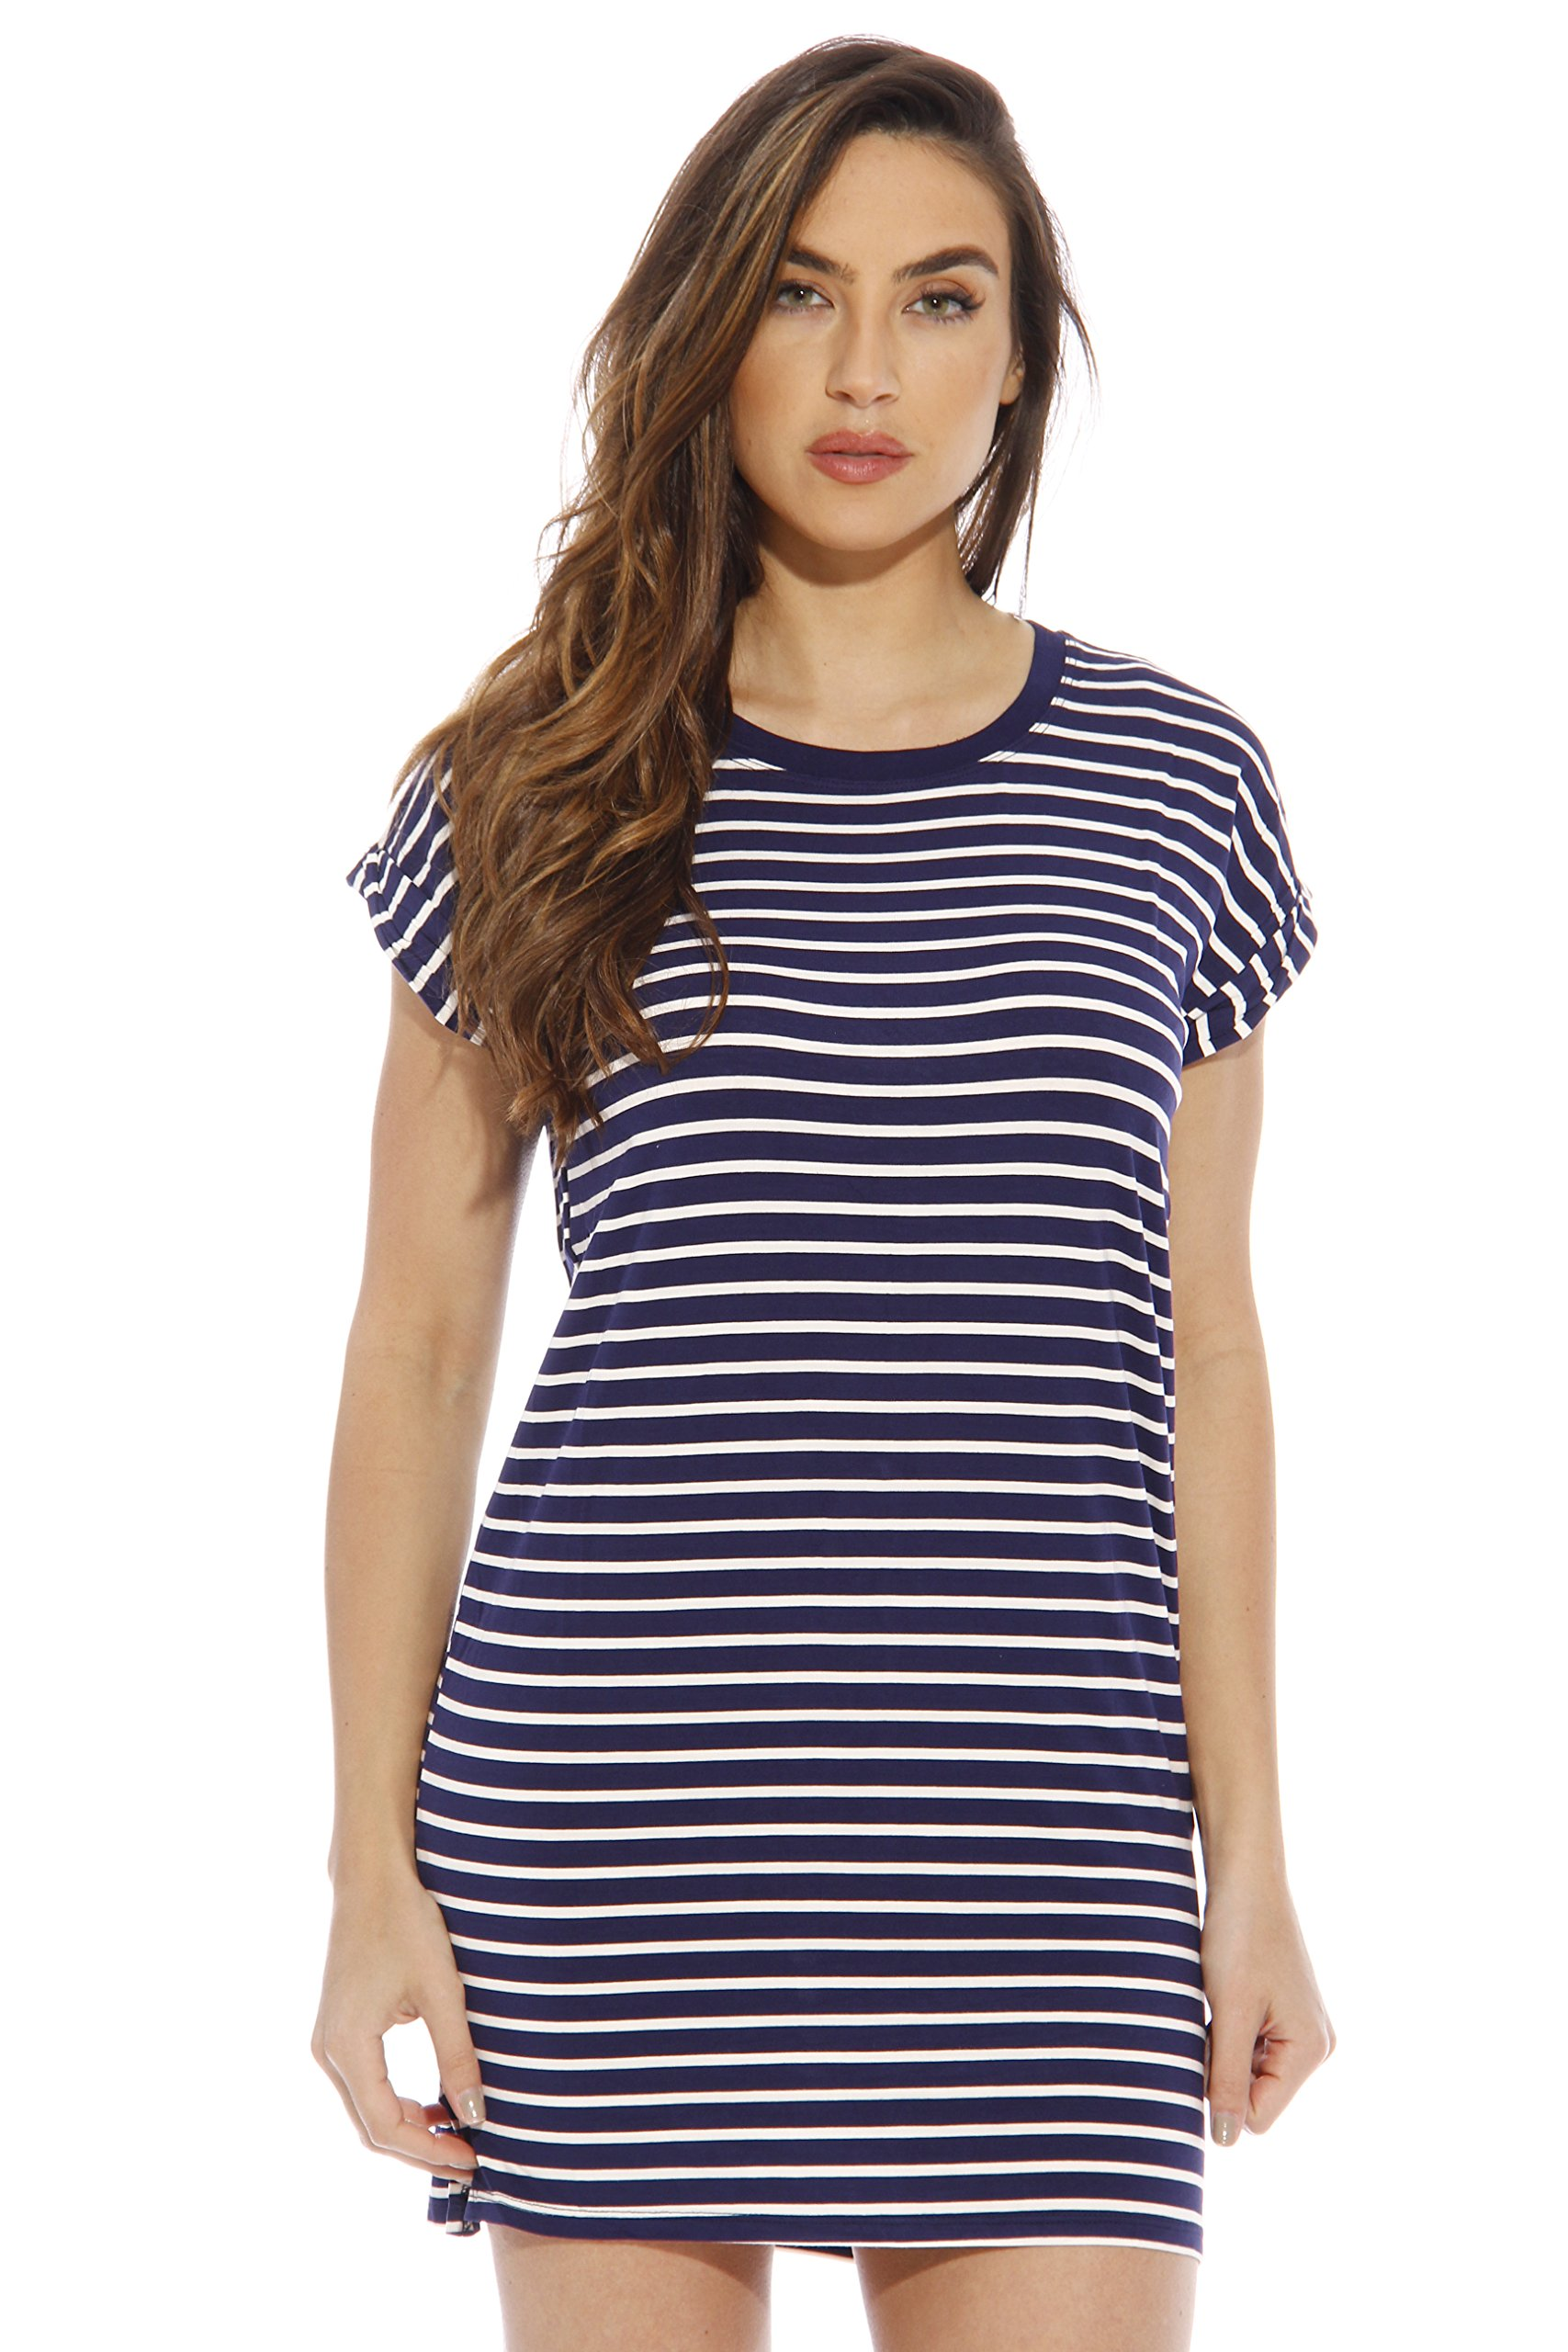 401121-NW-M Just Love Summer Dresses for Women / Resort Wear , Navy With White Stripe , Medium